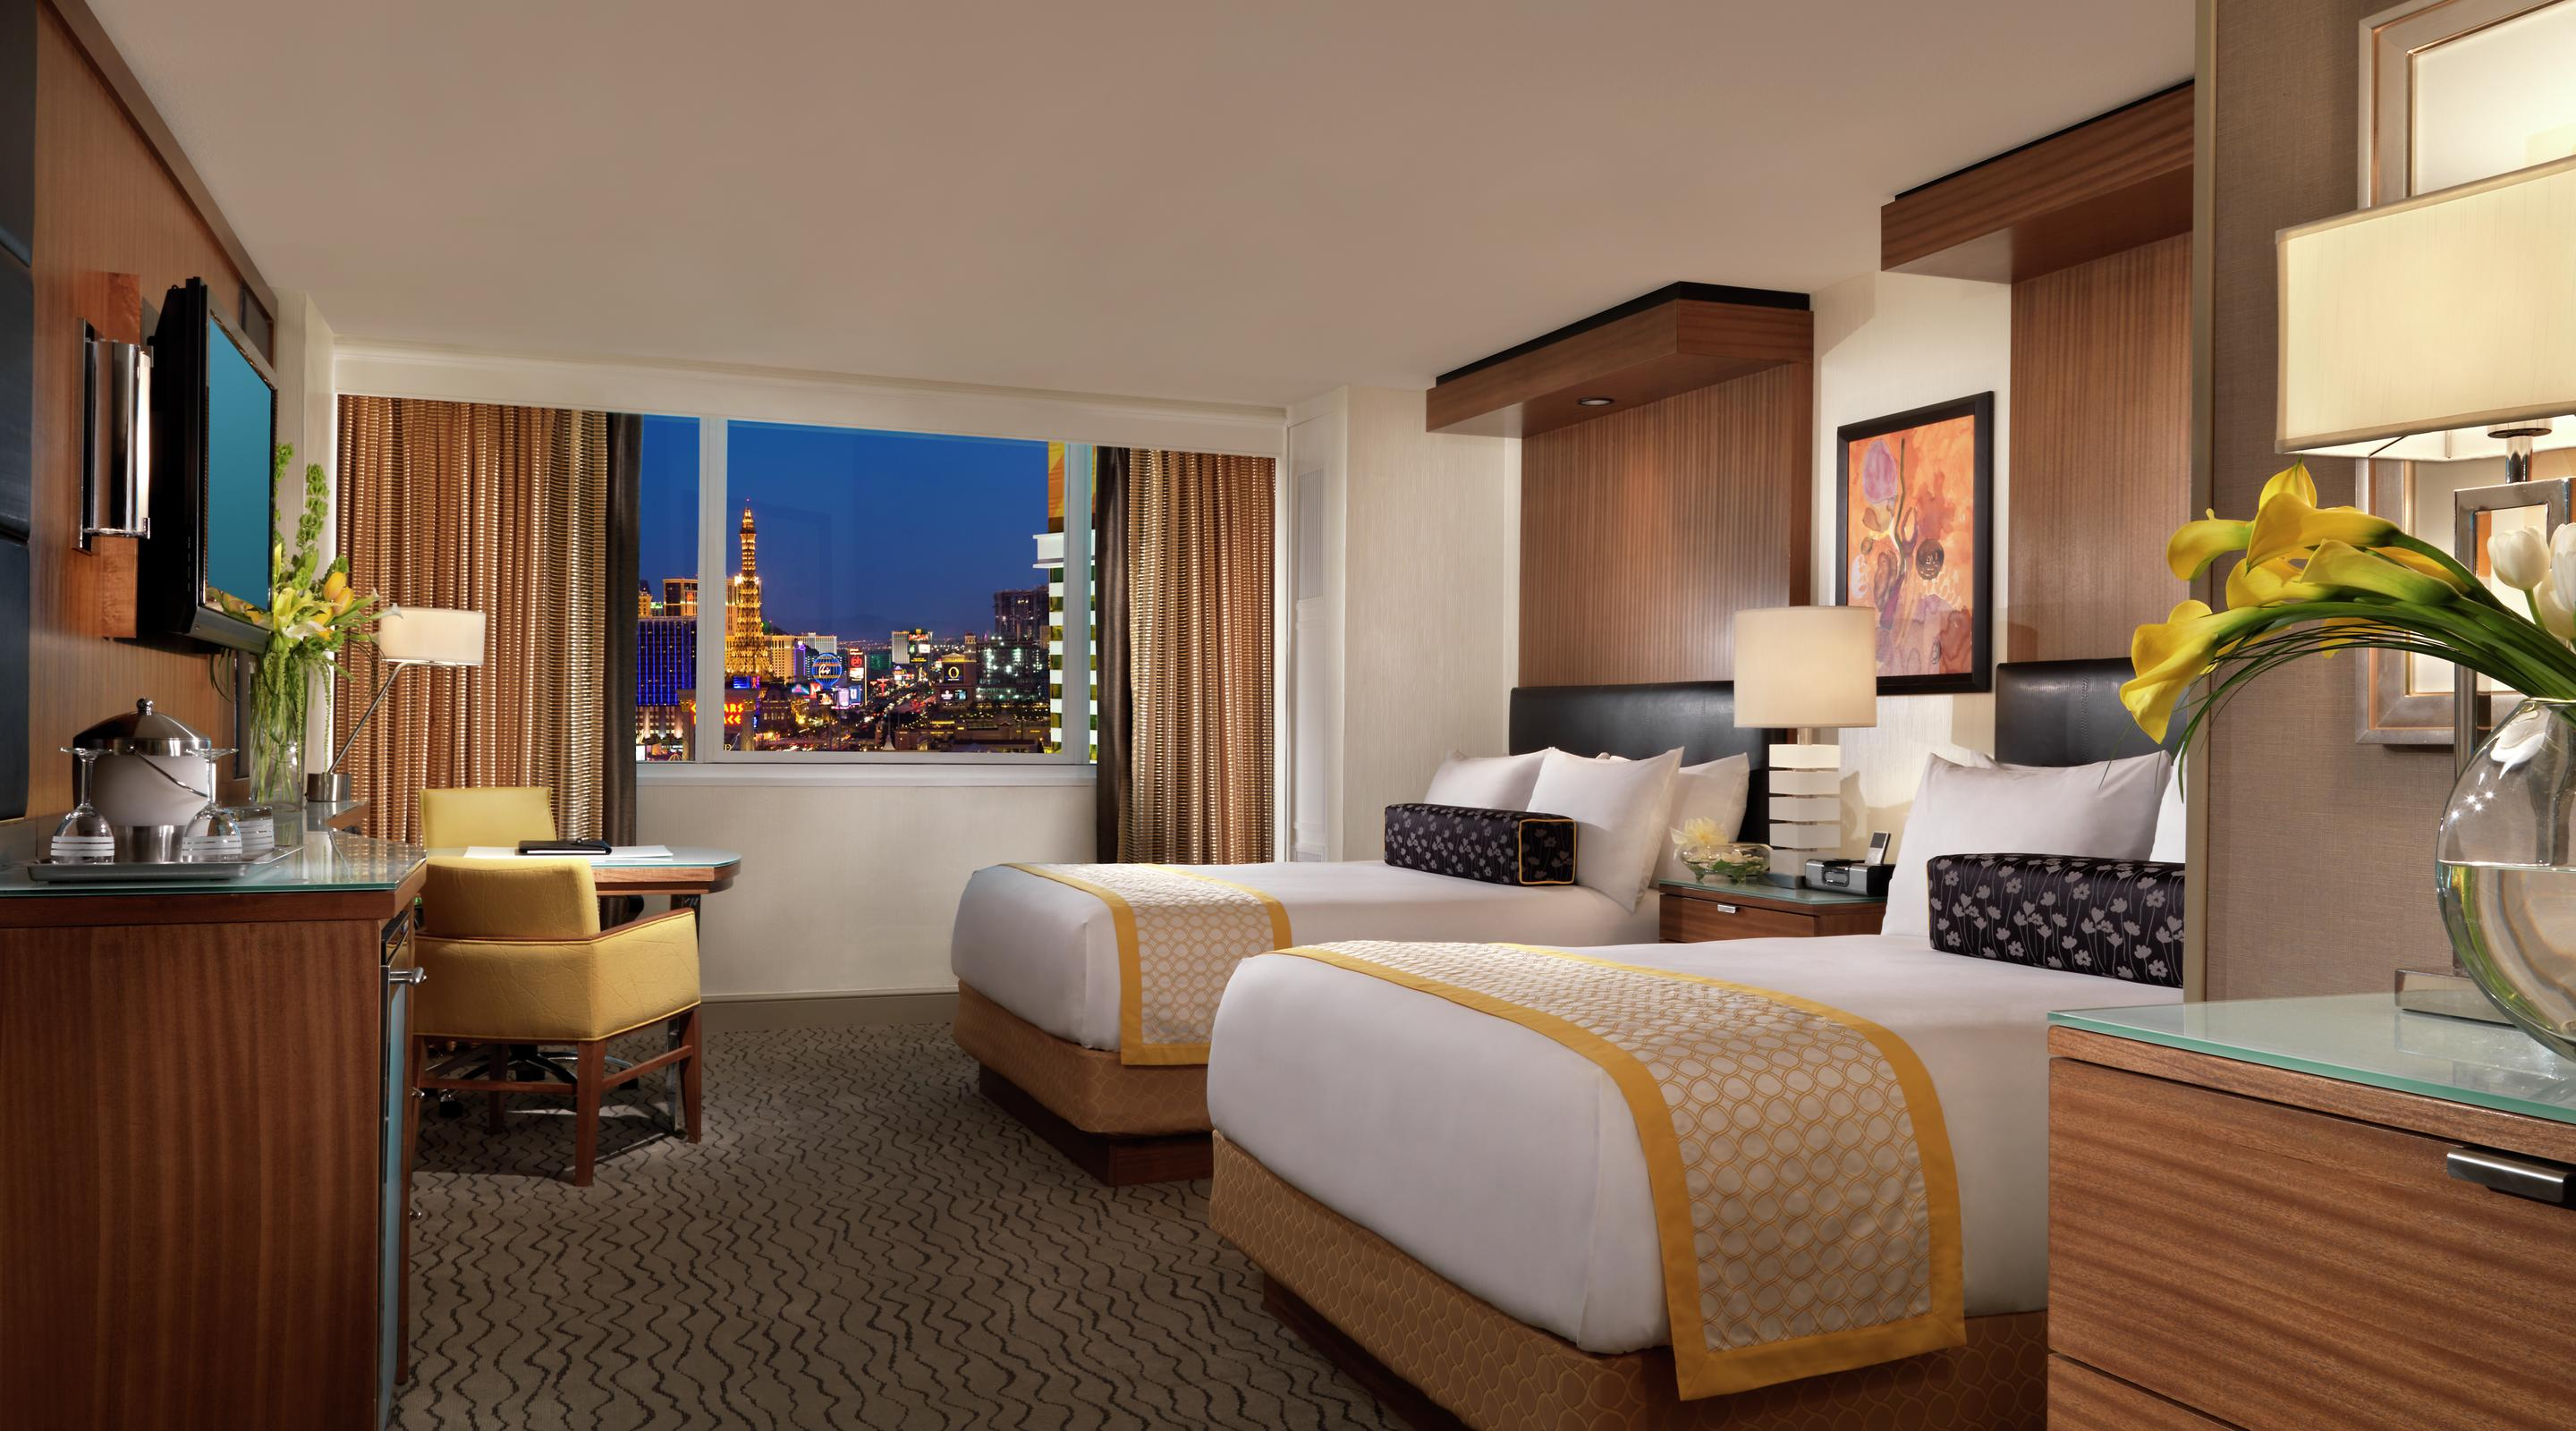 http://lasvegassuites.com/wp-content/uploads/2016/03/mirage-hotel-architectural-resort-tower-queen.jpg